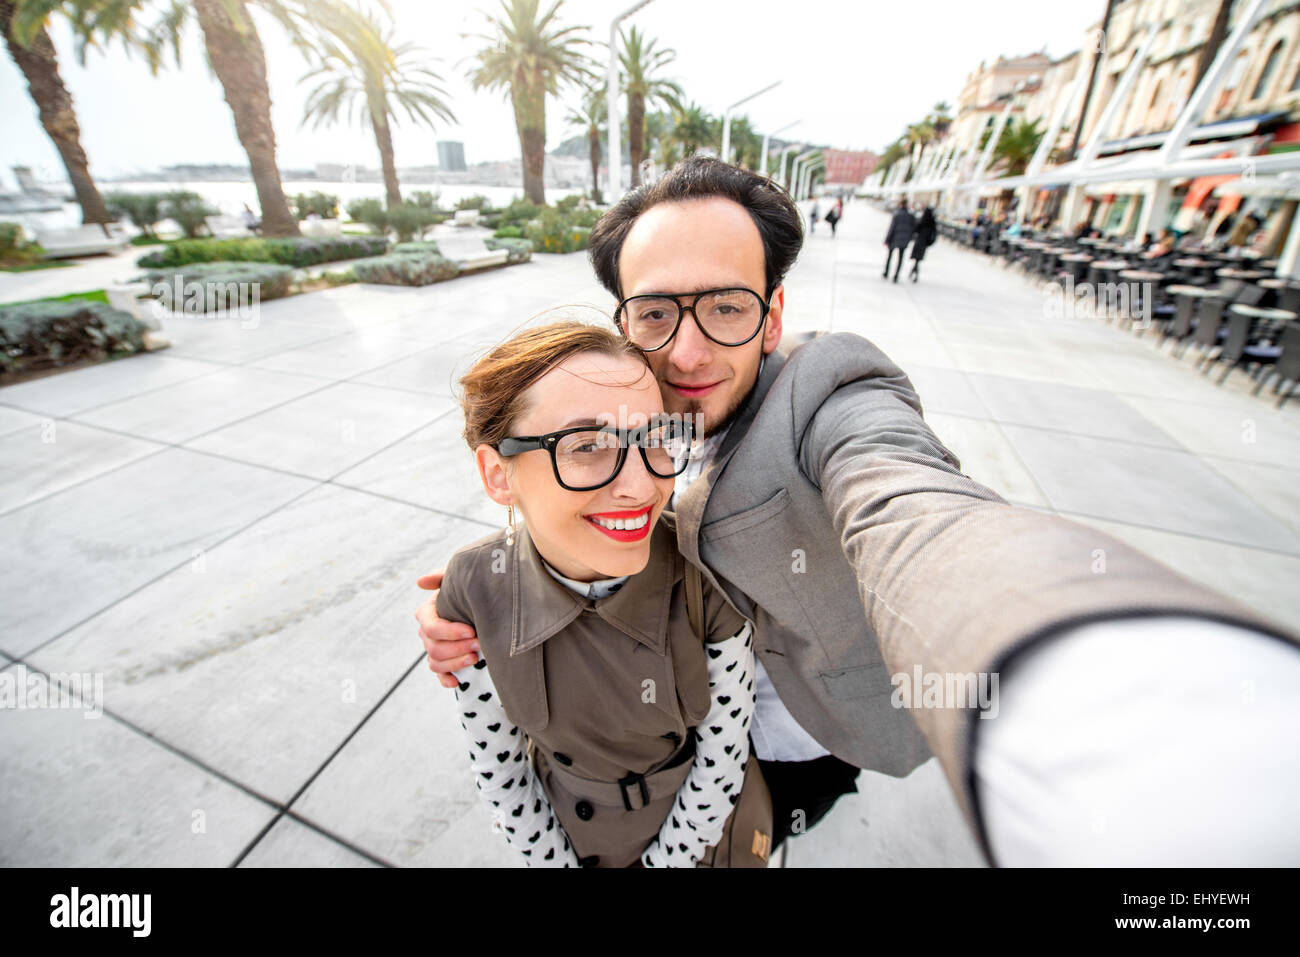 Couple taking selfie picture - Stock Image